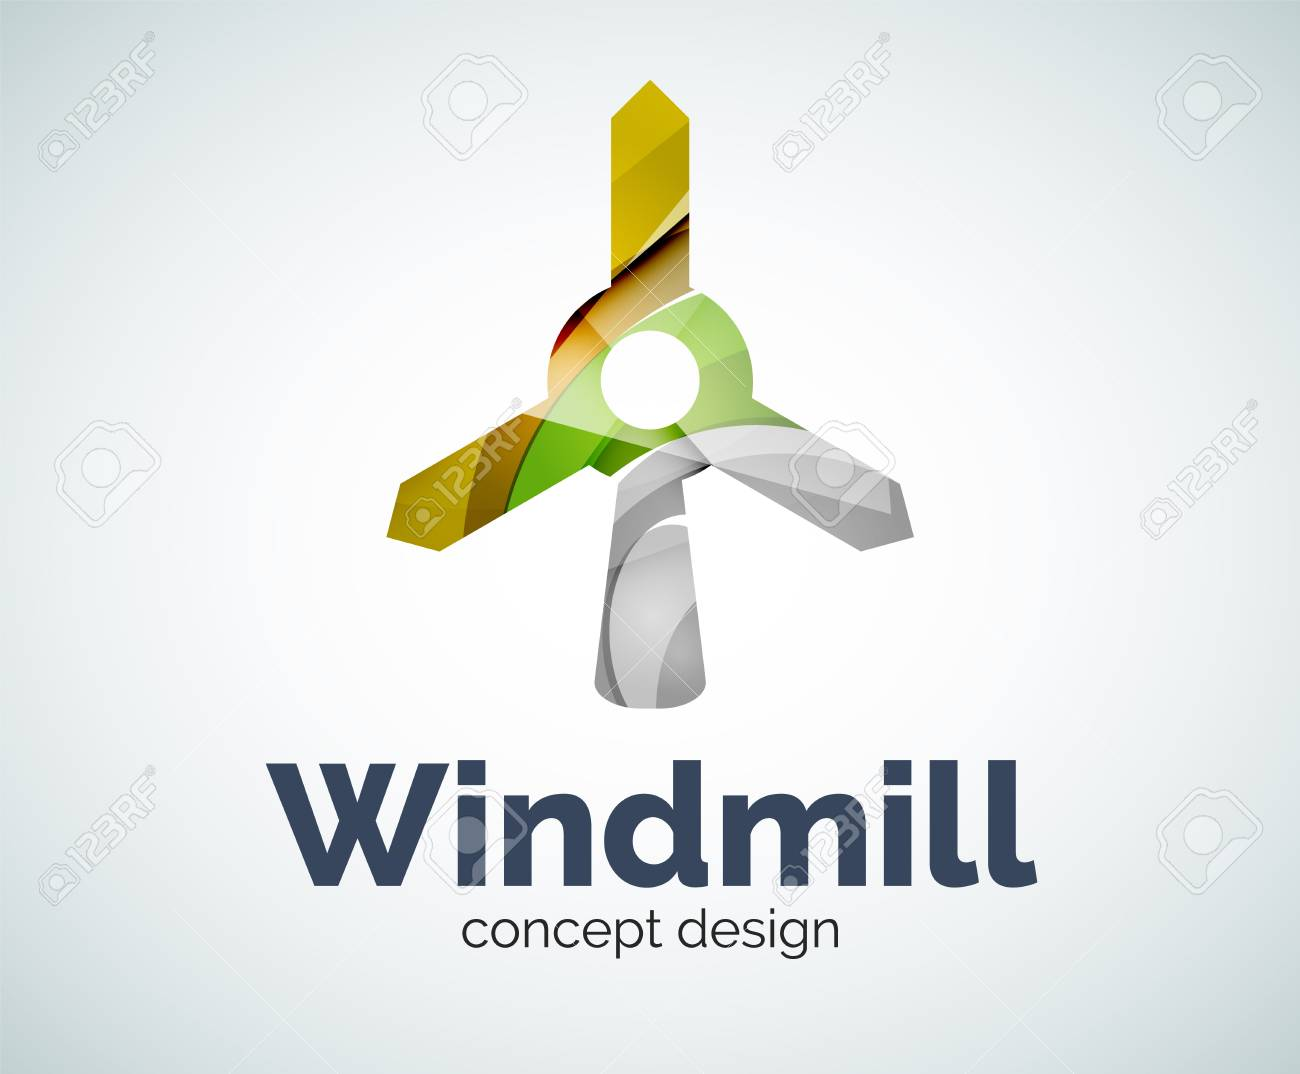 windmill template abstract elegant glossy business icon royalty